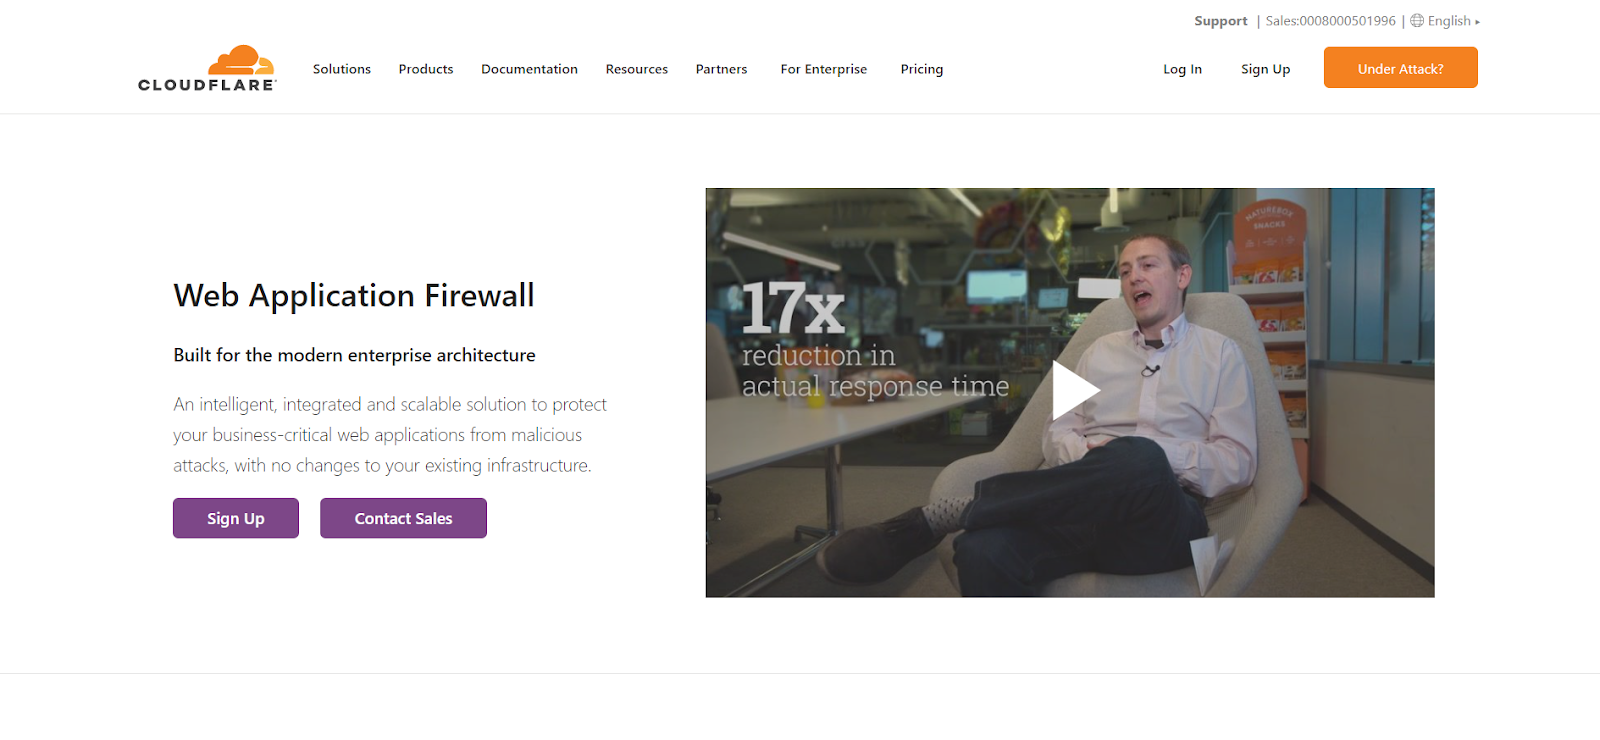 CloudFlare is a Web Application Firewall Application